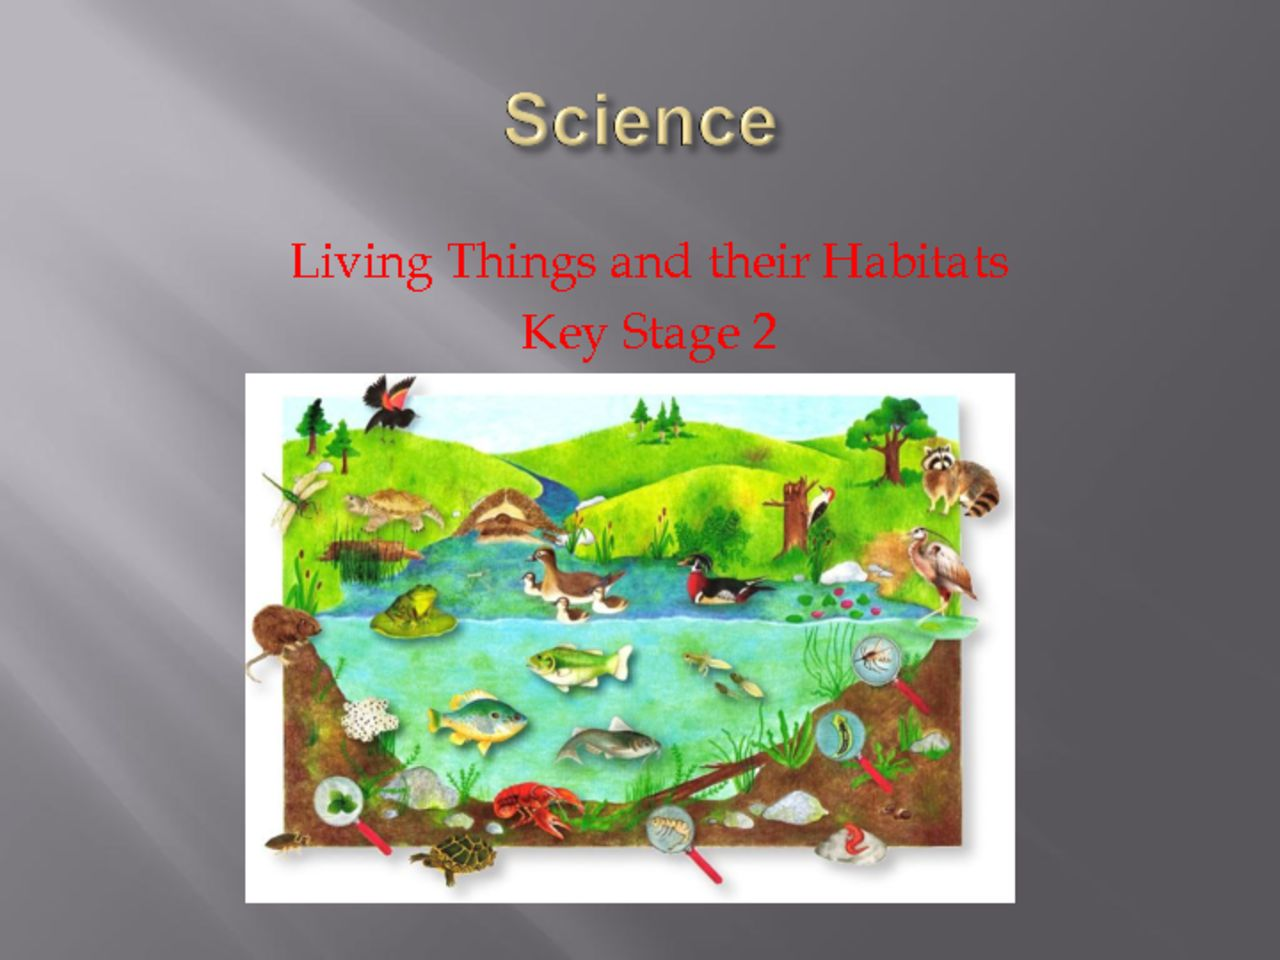 thumbnail of Science Key Stage 2 Habitats April 2020